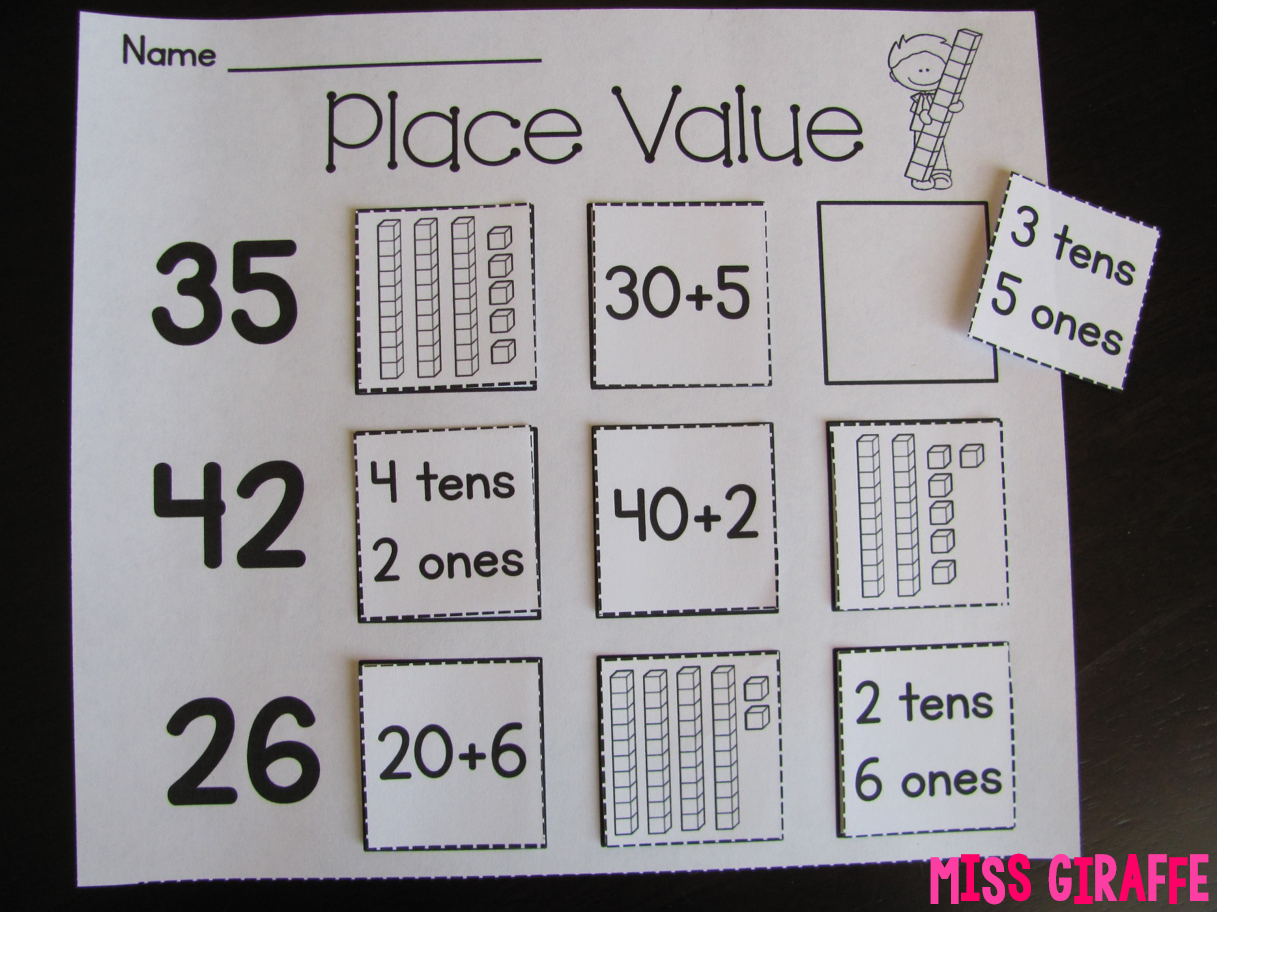 Worksheet First Grade Place Value Activities miss giraffes class place value in first grade okay